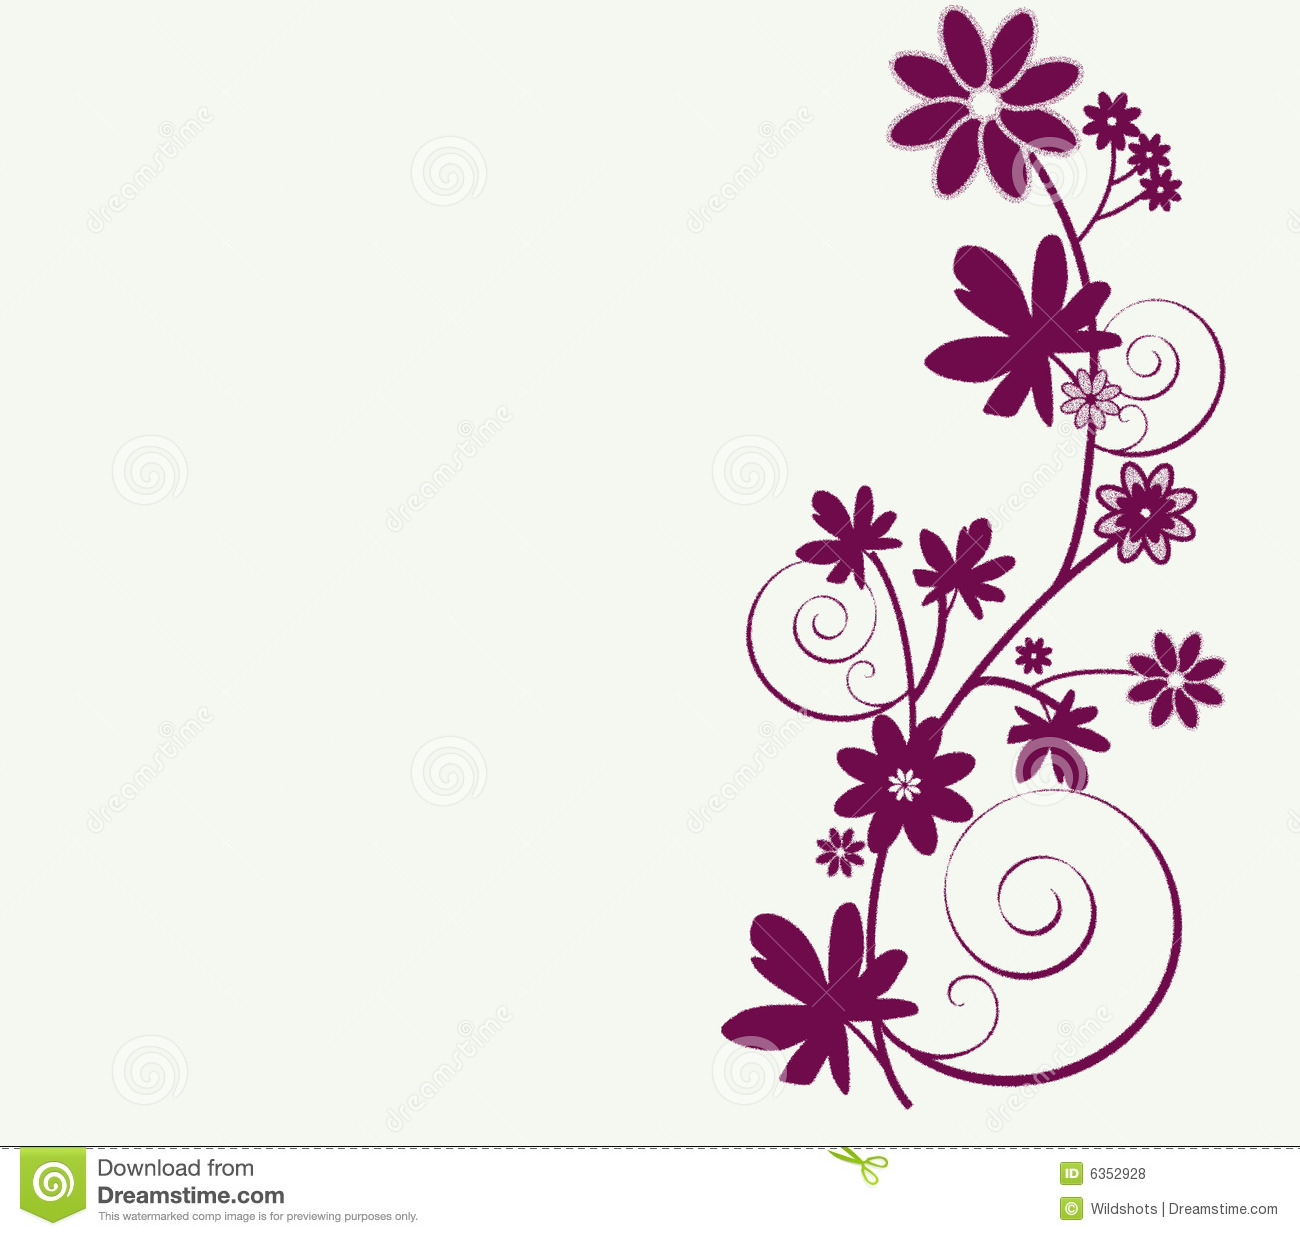 Whimsy design of flowers stock illustration illustration of whimsy design of flowers altavistaventures Images